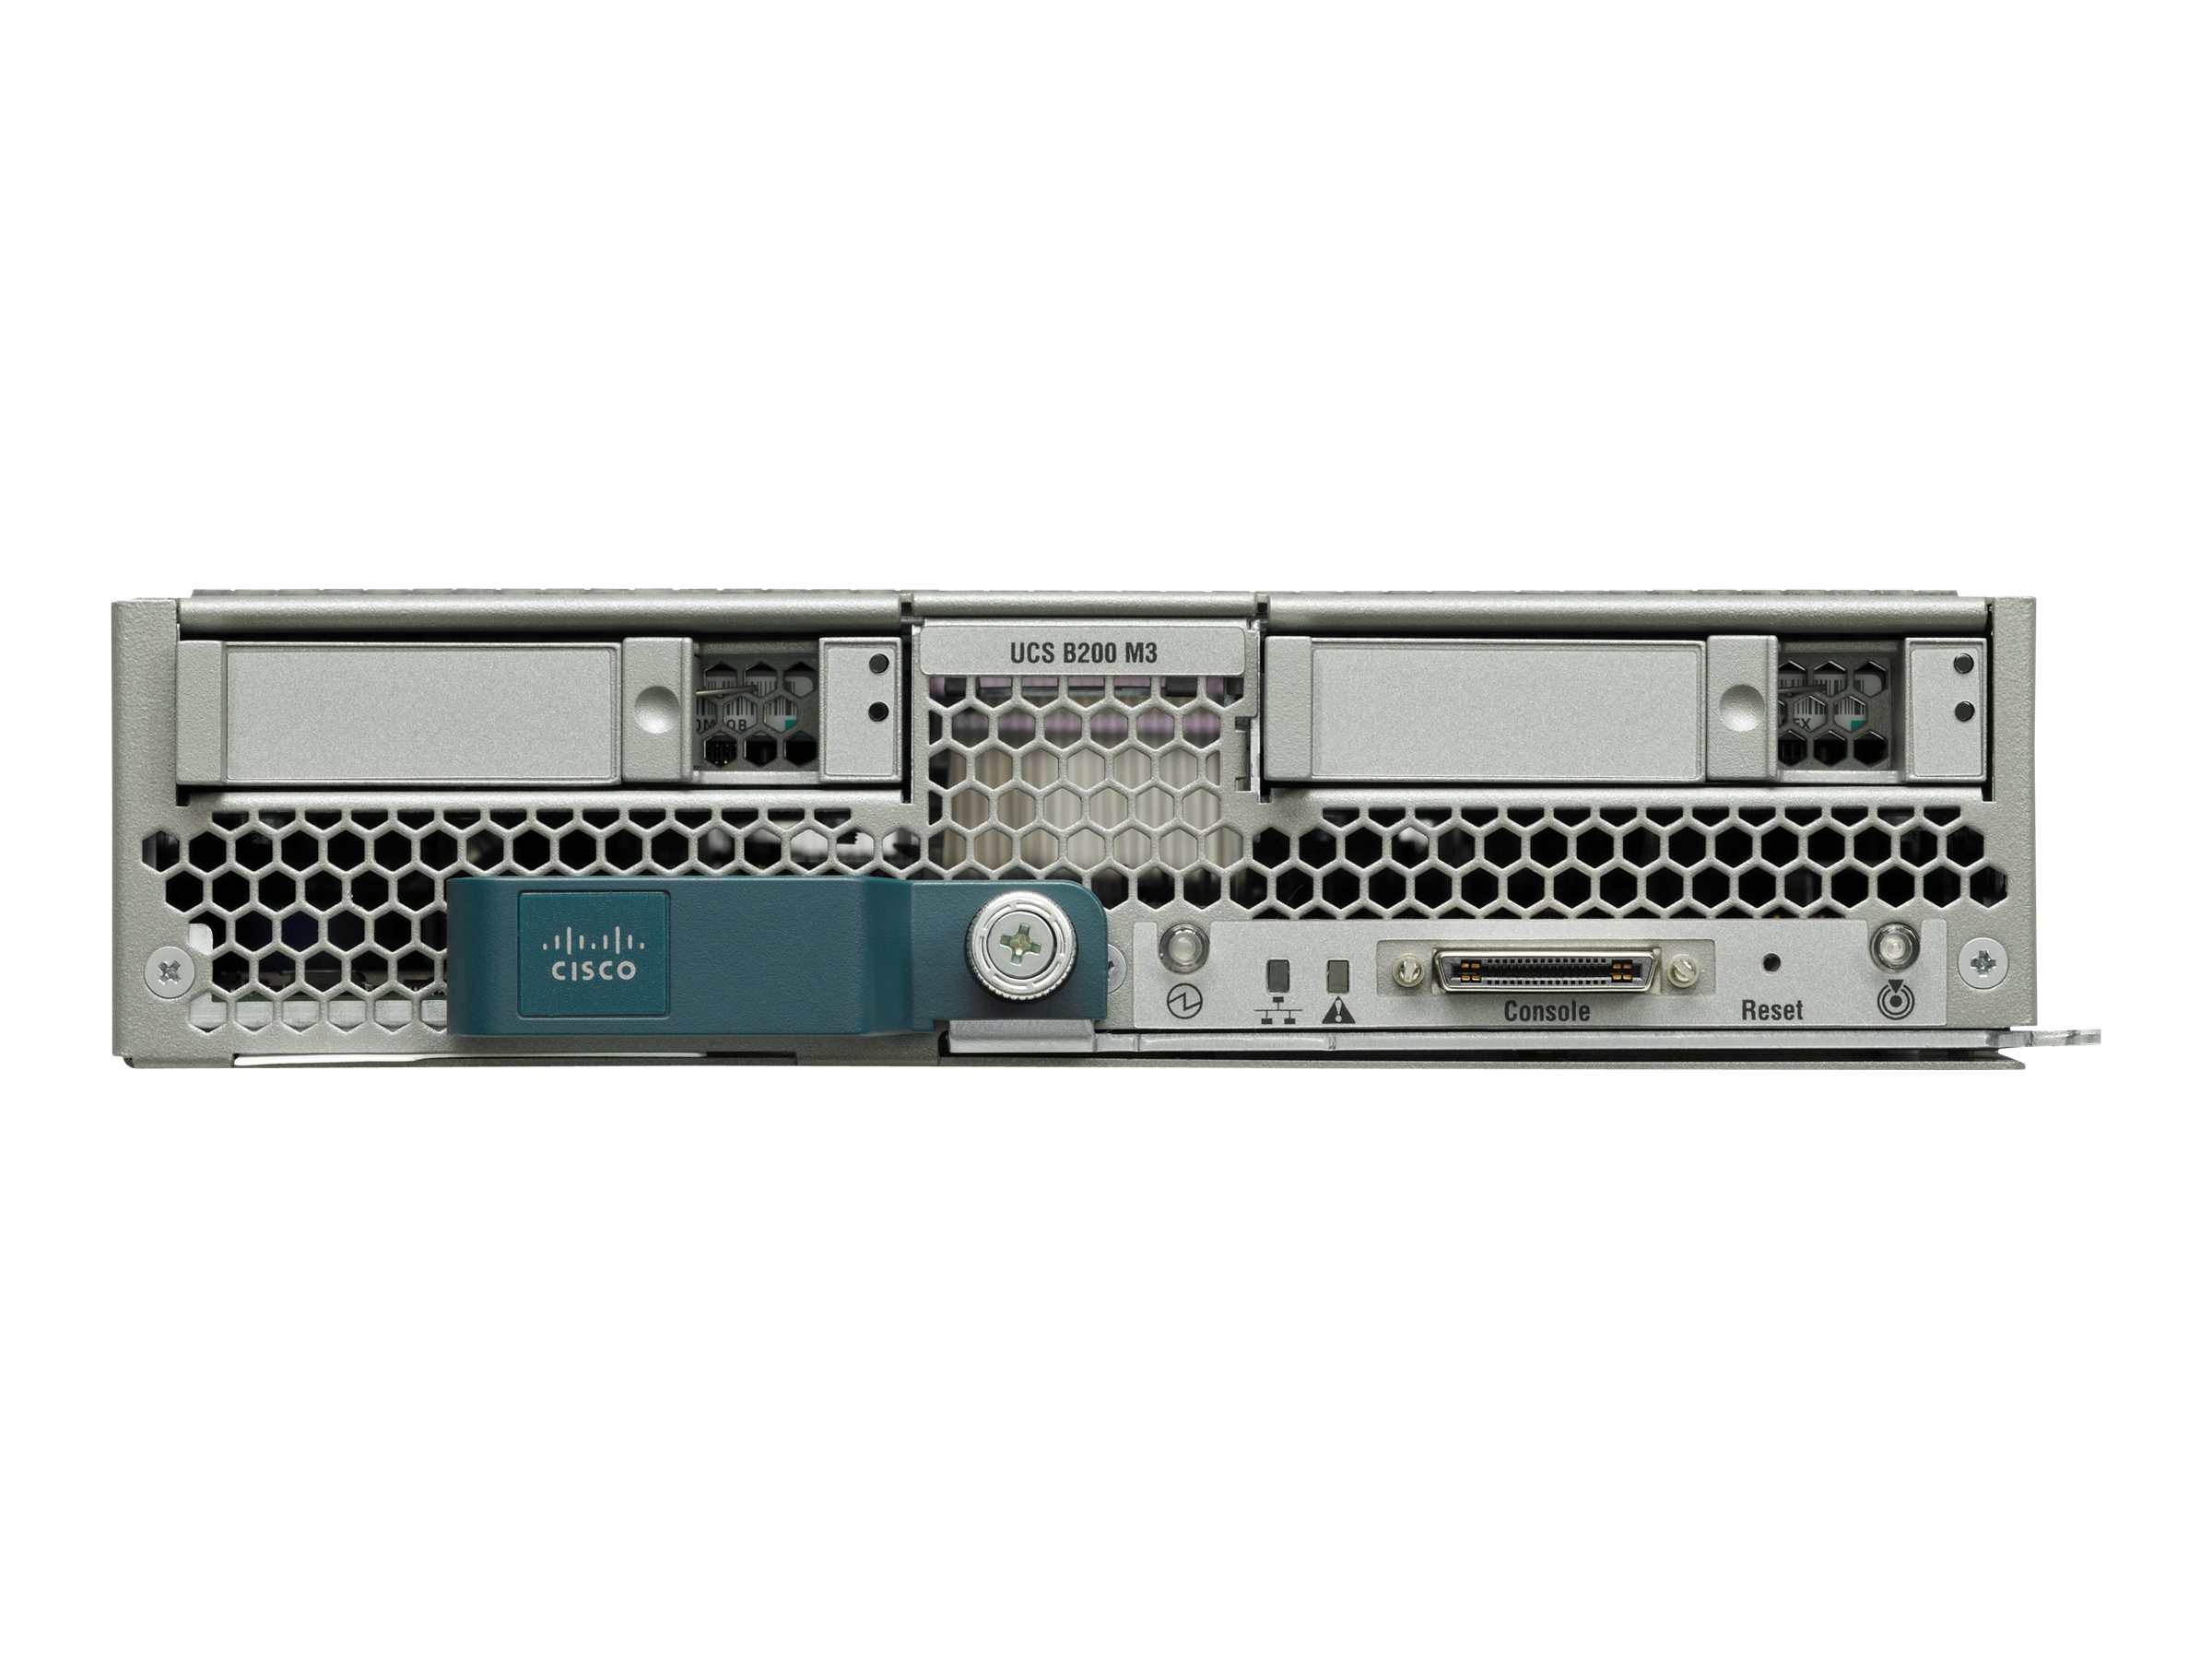 Cisco UCS B200 M3 Entry SmartPlay Bundle (1x) 5108 Chassis (2x) 65248UP Fabric (2x) B200 M3 Blades, UCS-SP6-ES-B200, 15616289, Servers - Blade